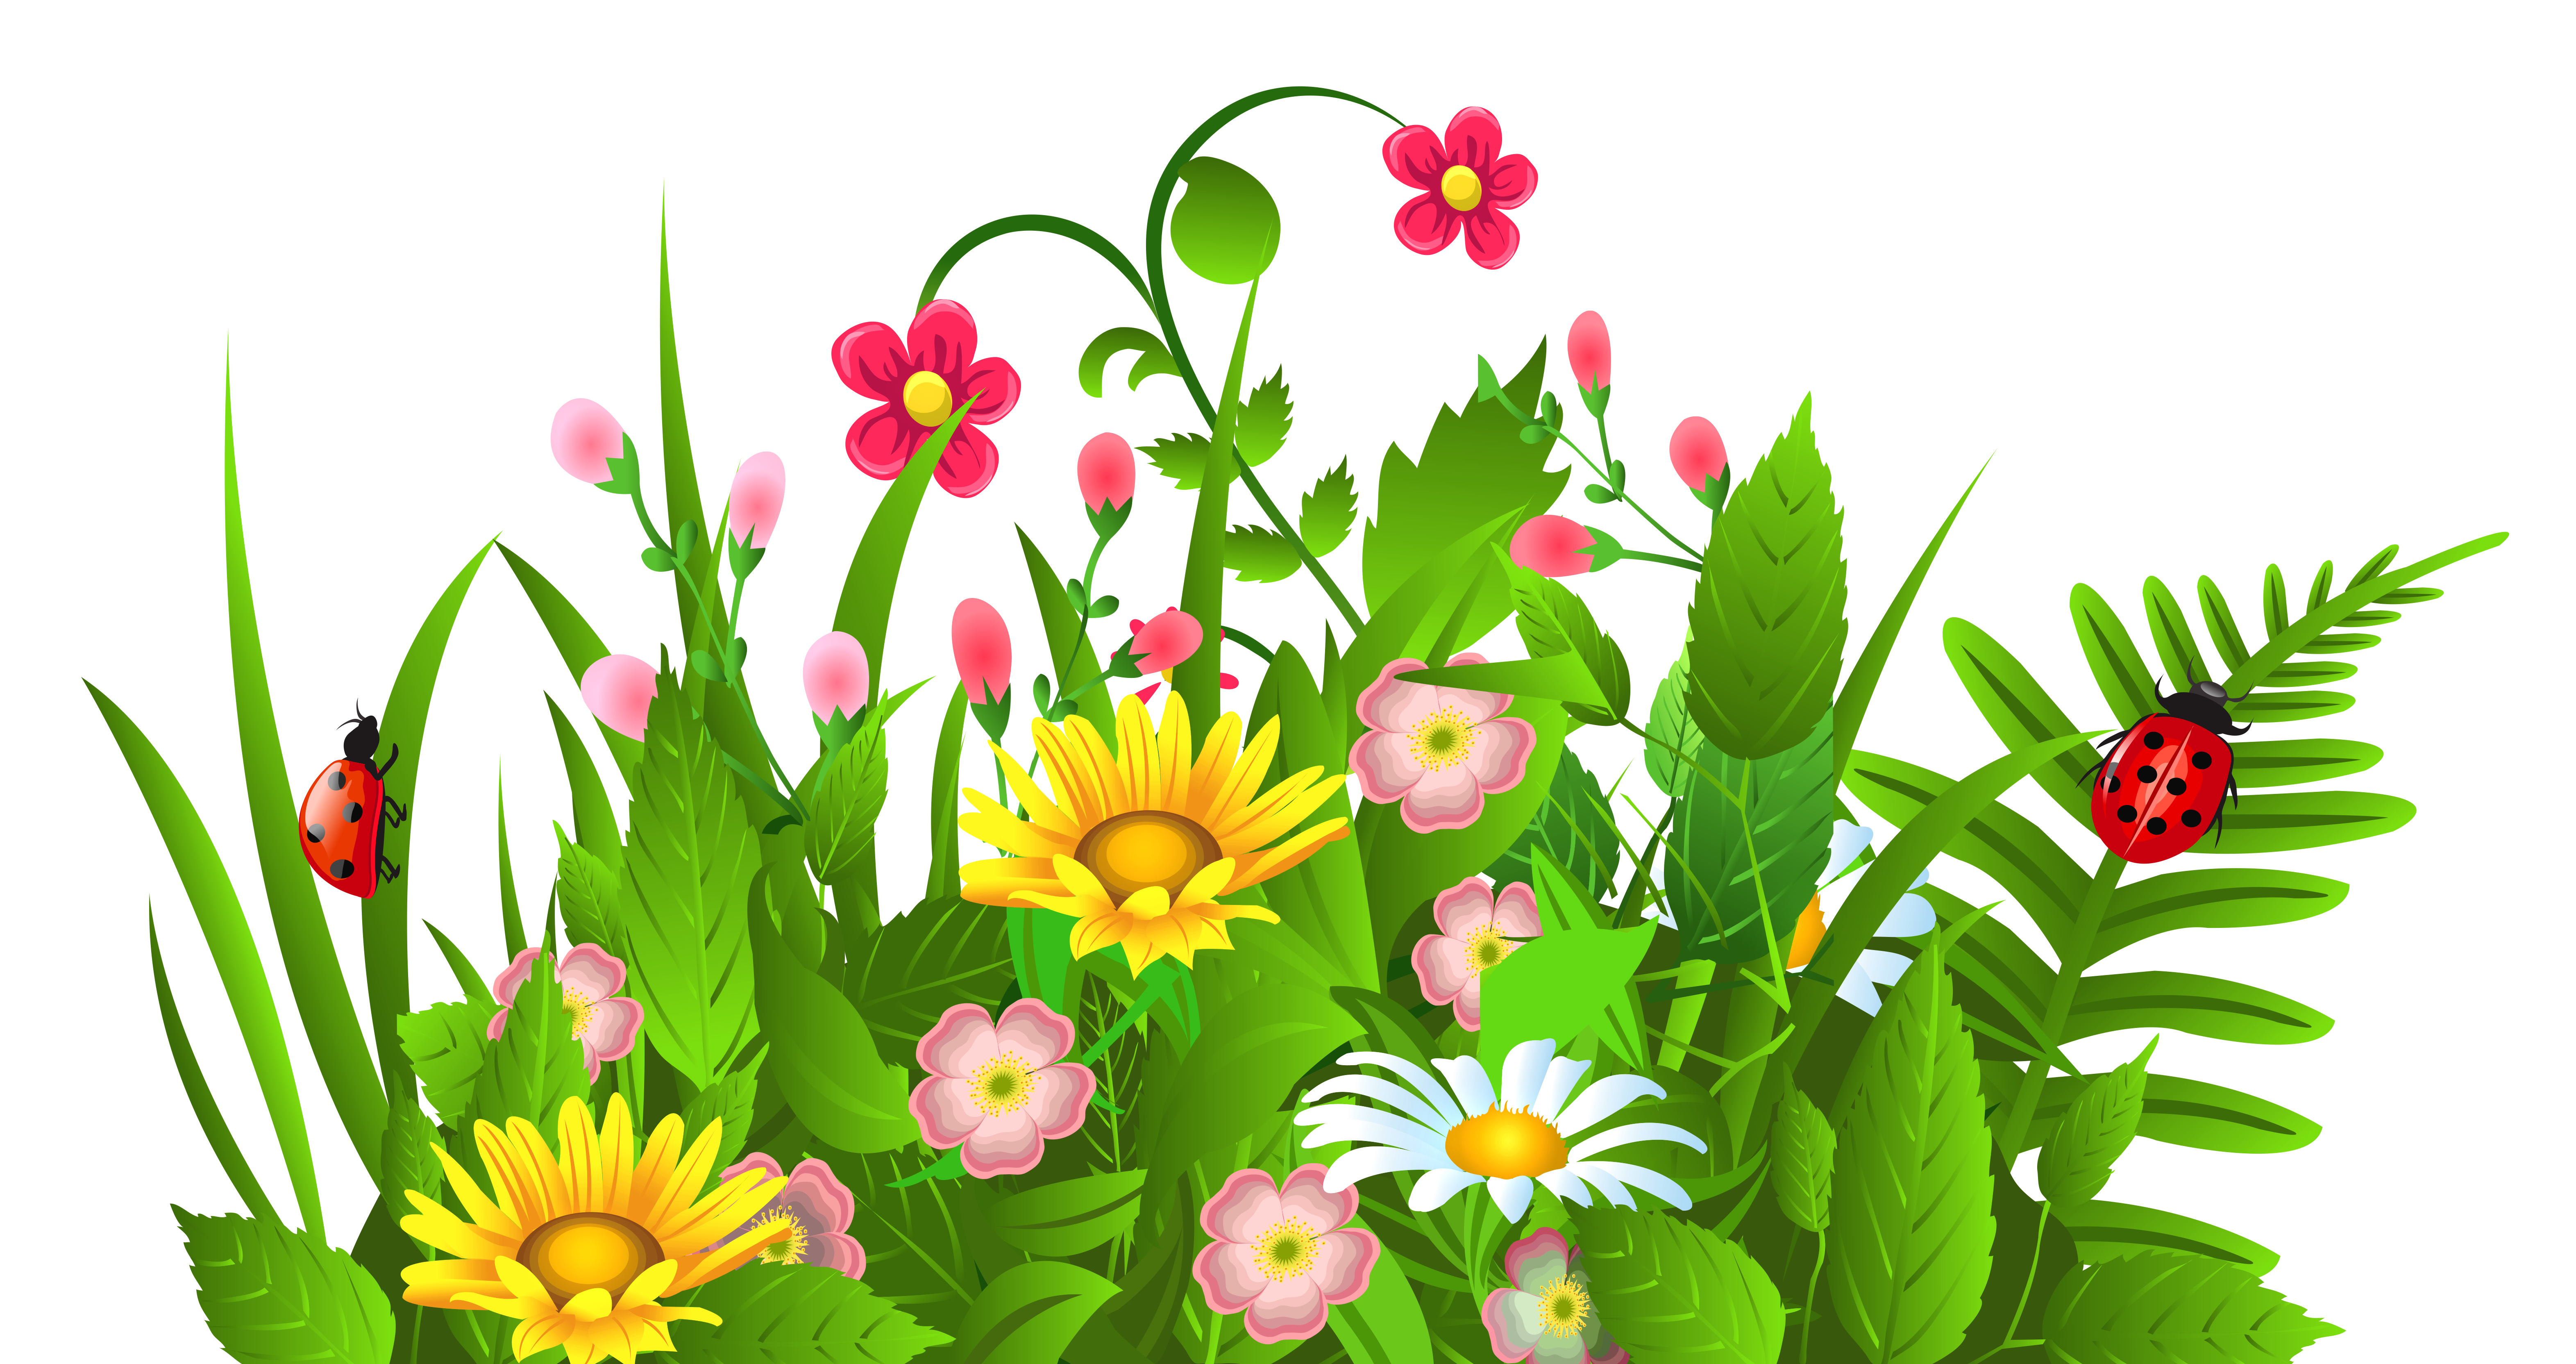 Flowers clipart free download best flowers clipart on clipartmag 6287x3328 flowers clip art free clipart images clipartwiz 2 mightylinksfo